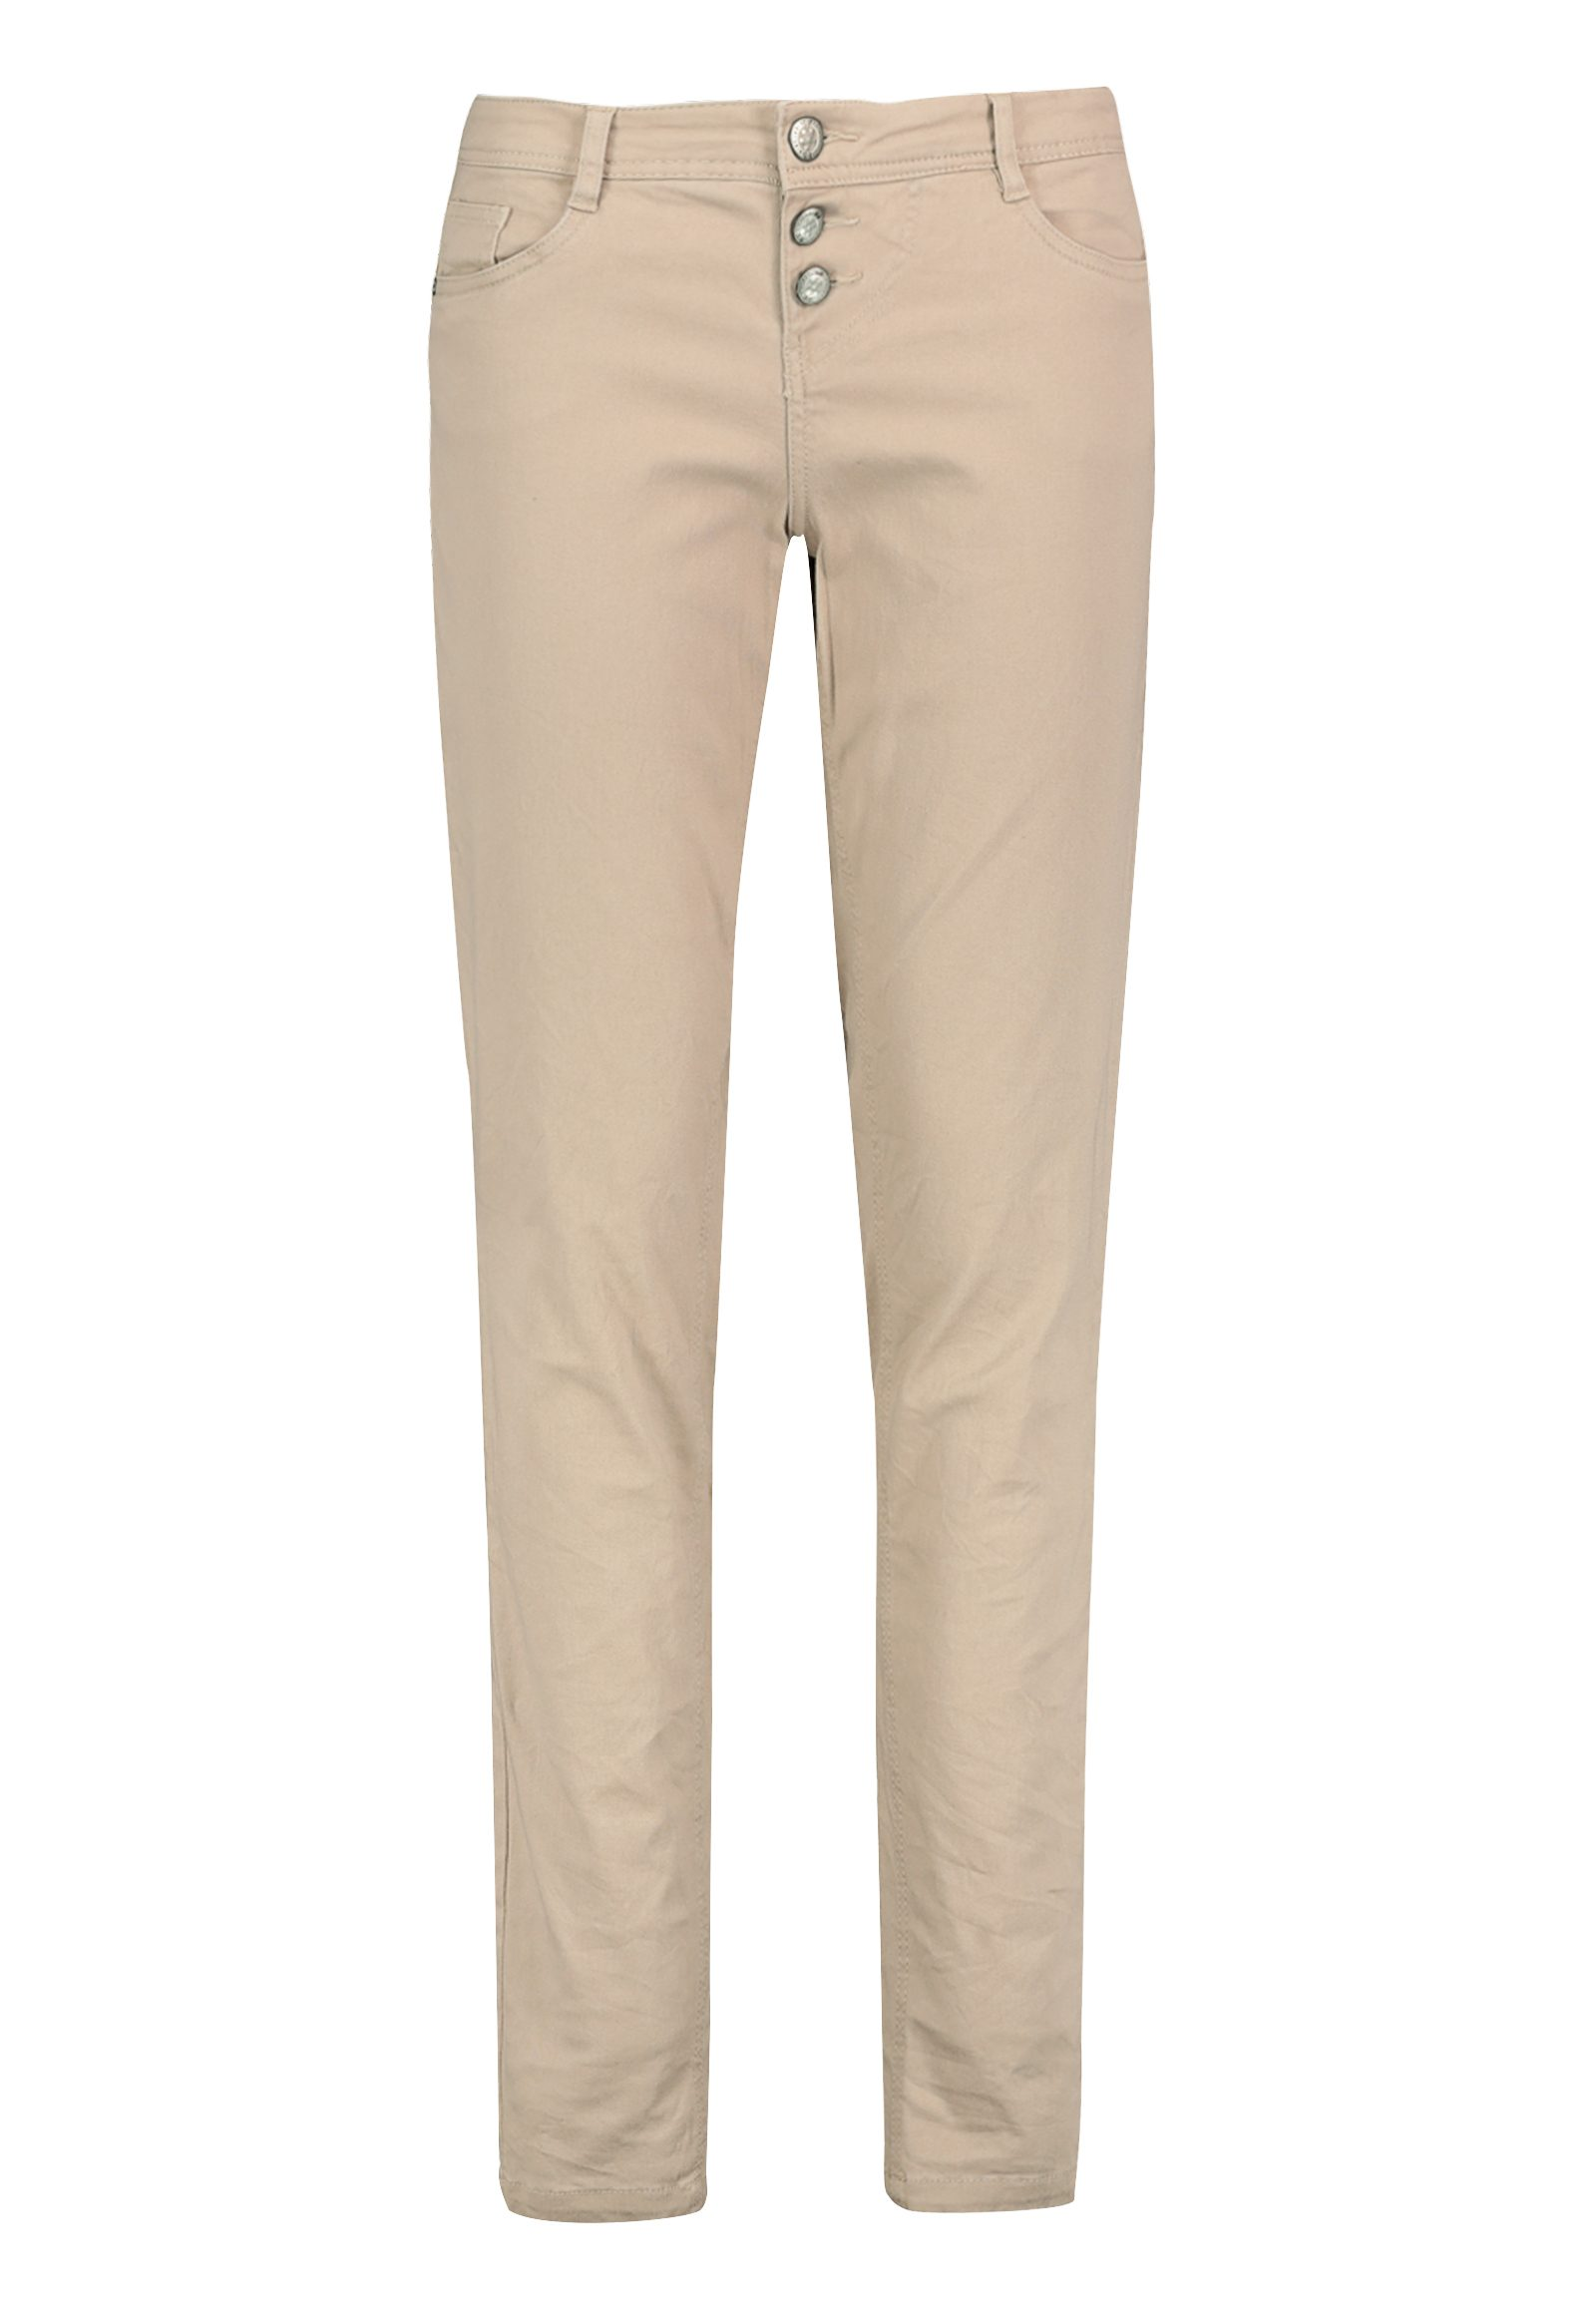 Hosen - Skinny Twillhose mit Knopfleiste › Eight2Nine › beige  - Onlineshop FASHION5